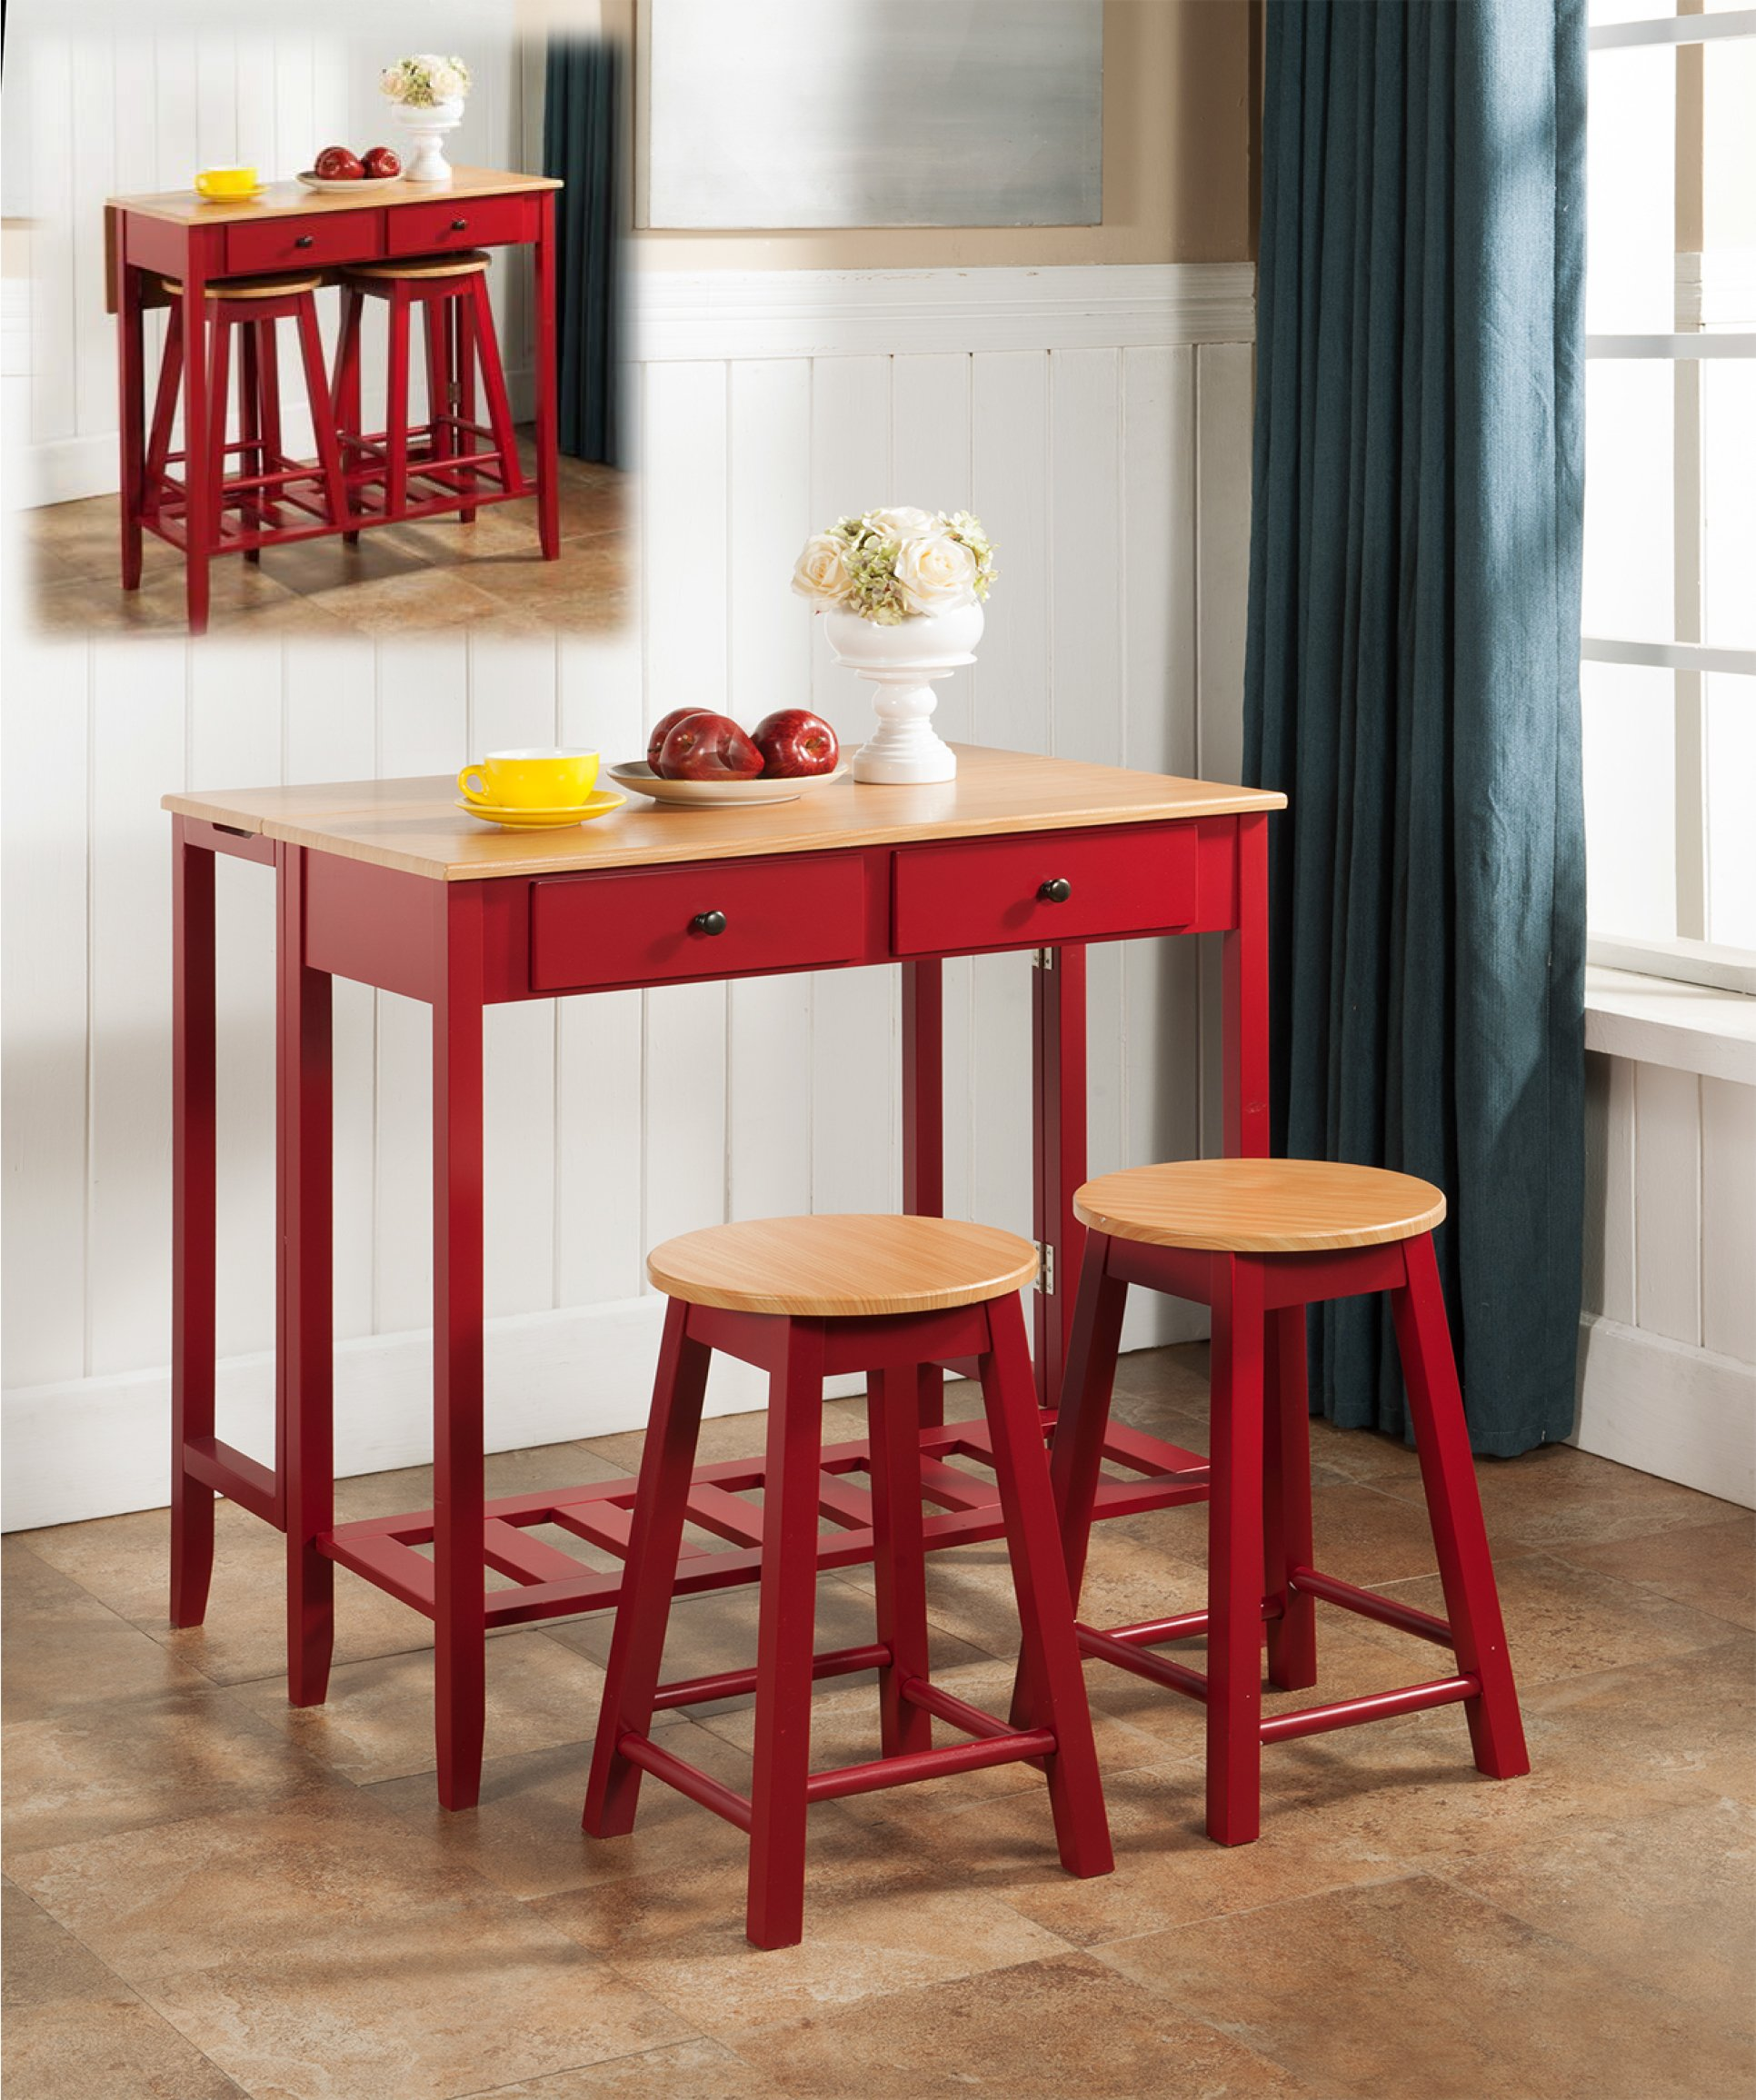 Kings Brand Furniture 3 Piece Kitchen Island Breakfast Bar Set Drop Down Table & 2 Stools - 3 Pc. Kings Brand Kitchen Island Breakfast Bar Set Drop Down Table & 2 Stools With its sleek red finish and marble veneer tops, the Pub set radiates contemporary chic, encouraging casual meals and late conversations Scaled to fit into smaller spaces or cozy nooks in larger rooms - kitchen-dining-room-furniture, kitchen-dining-room, dining-sets - 91u75QBSZaL -